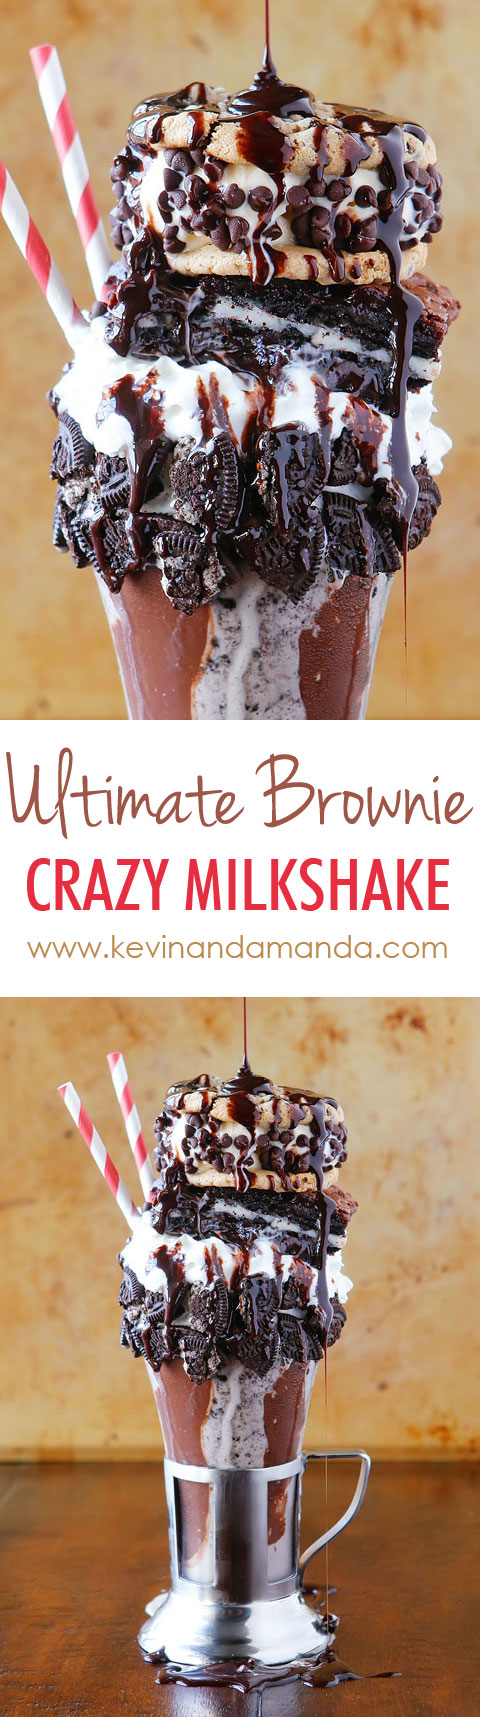 Crazy milkshakes are all the hype in NYC, London, and Australia. Now you can skip the cross country flight AND 4-5 hour wait in line and make them right at home!! Such a fun idea for a party. MUST try this!!